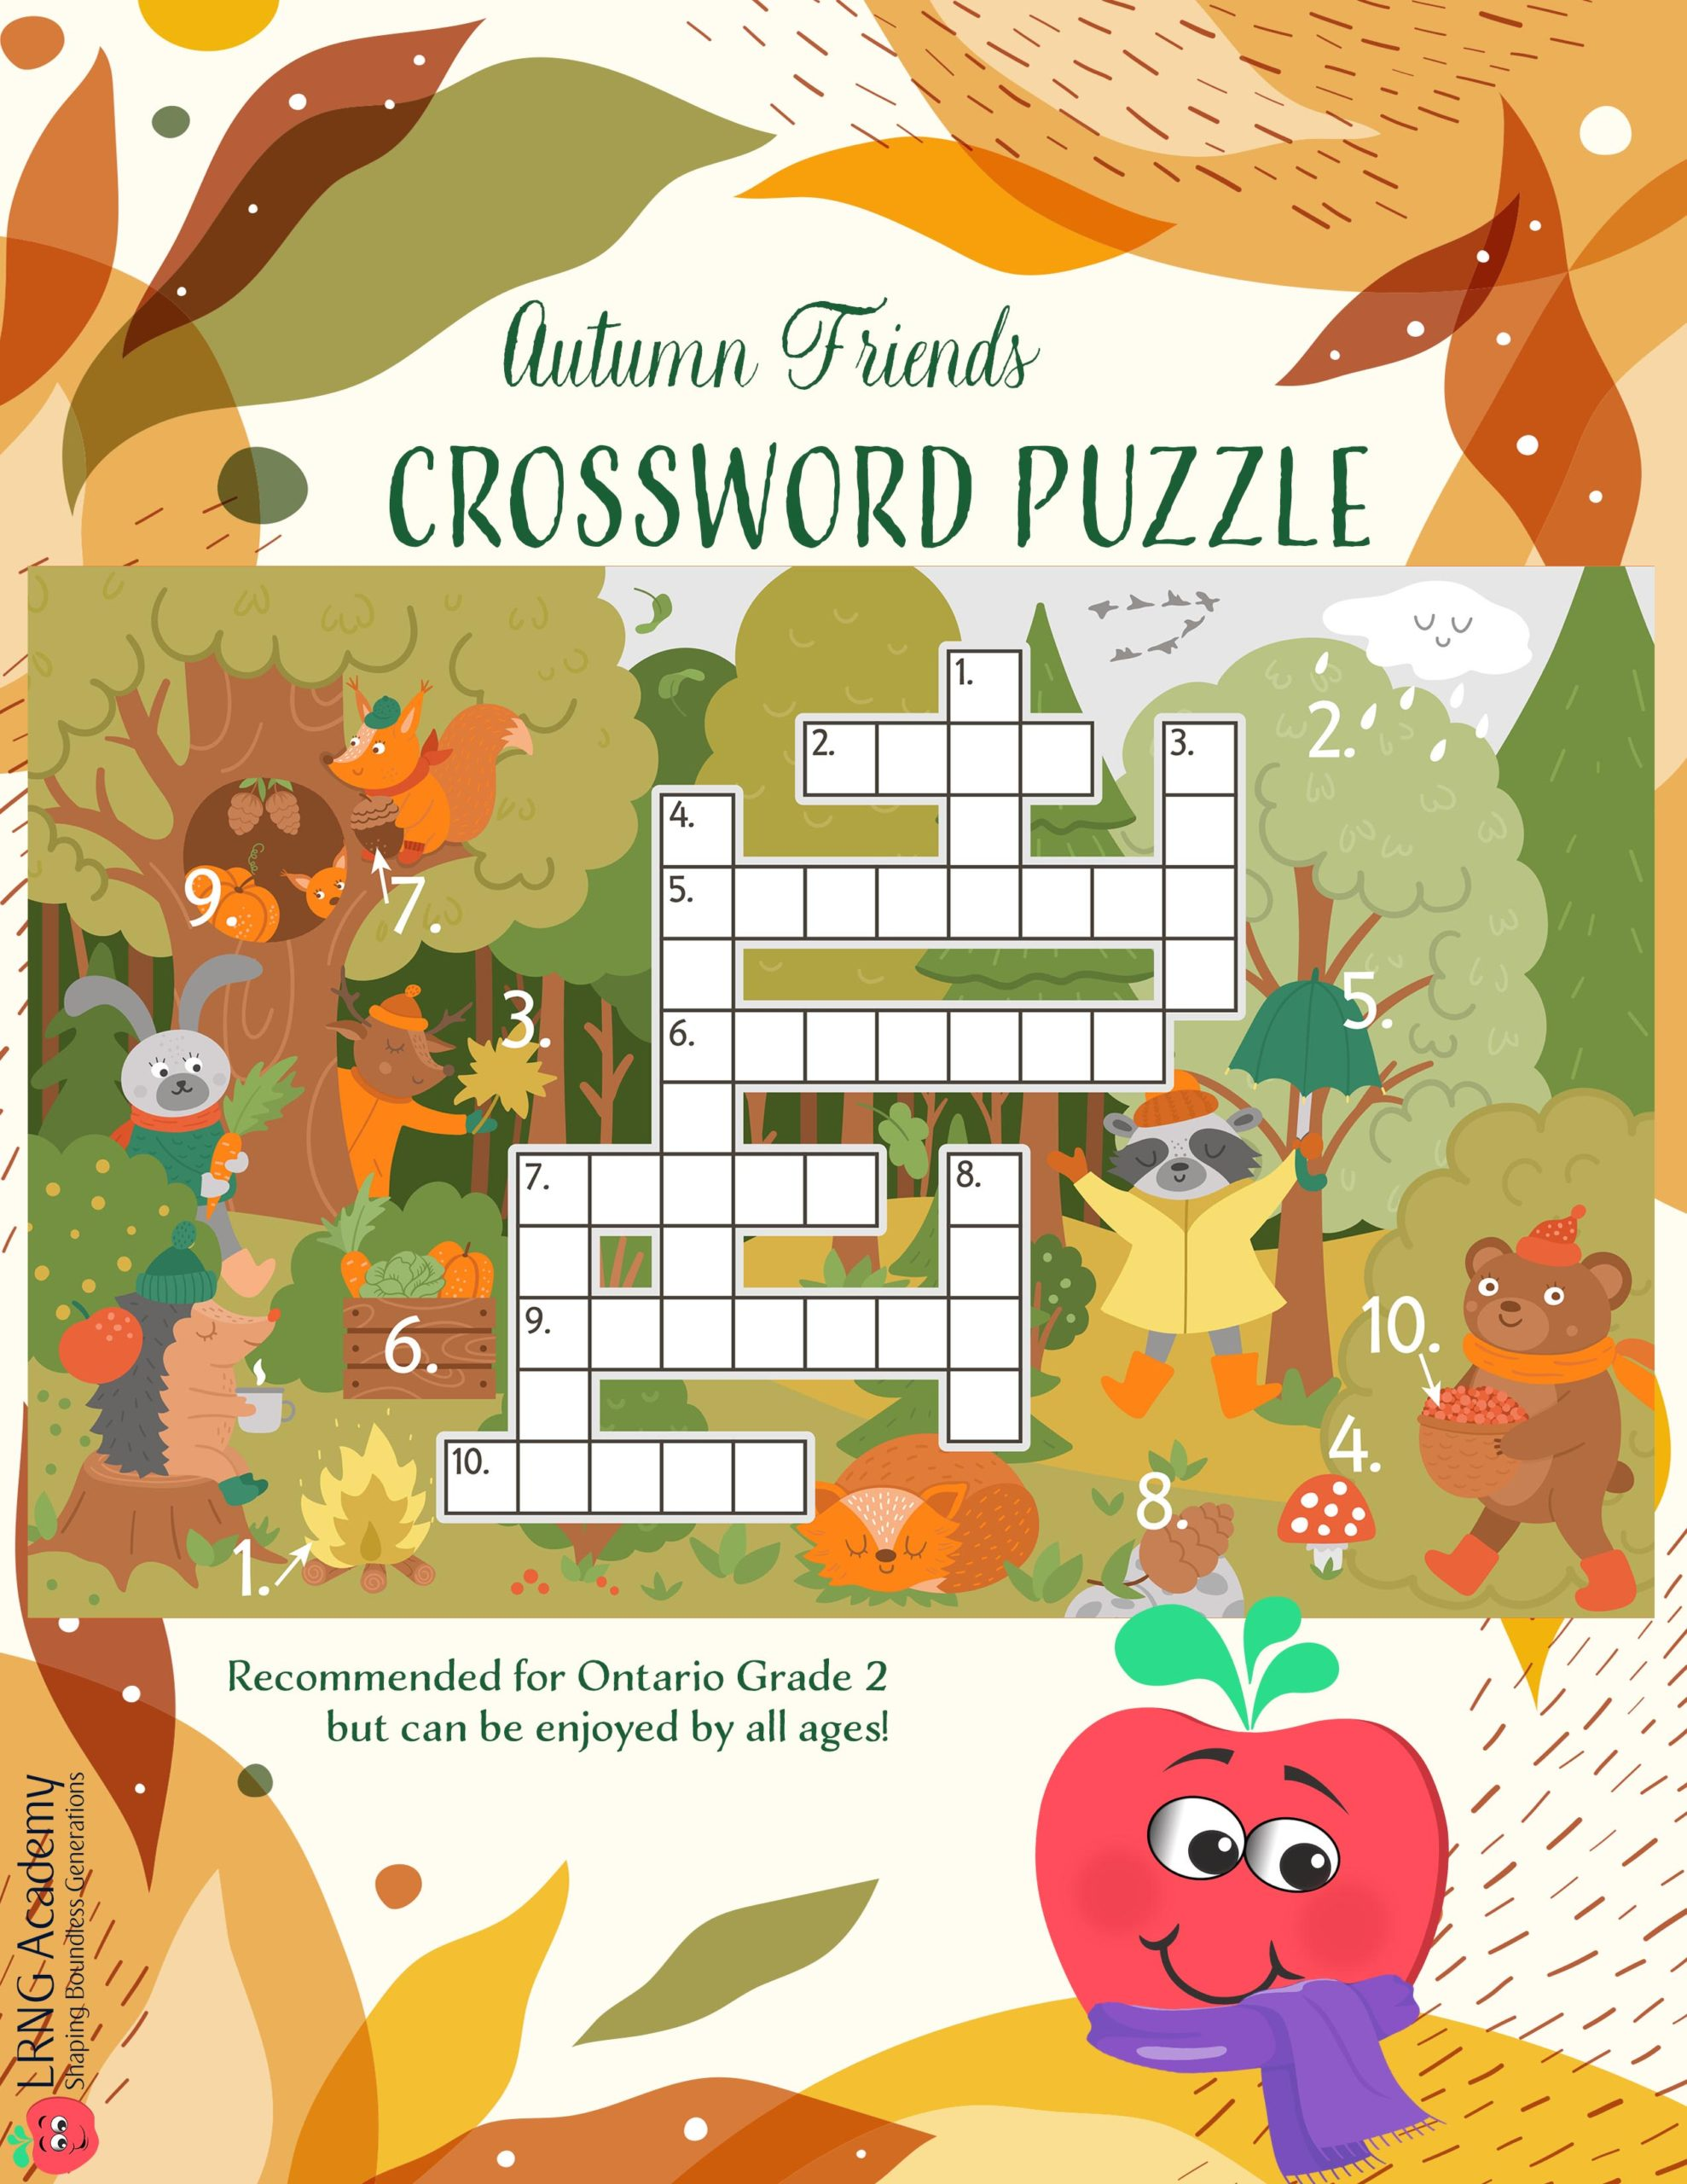 Autumn Crossword scaled - Appie Activities - LRNG Academy - Shaping Boundless Generations - Online Tutoring | Online Learning | eLearning | Virtual School | Tutoring Service | Virtual Learning